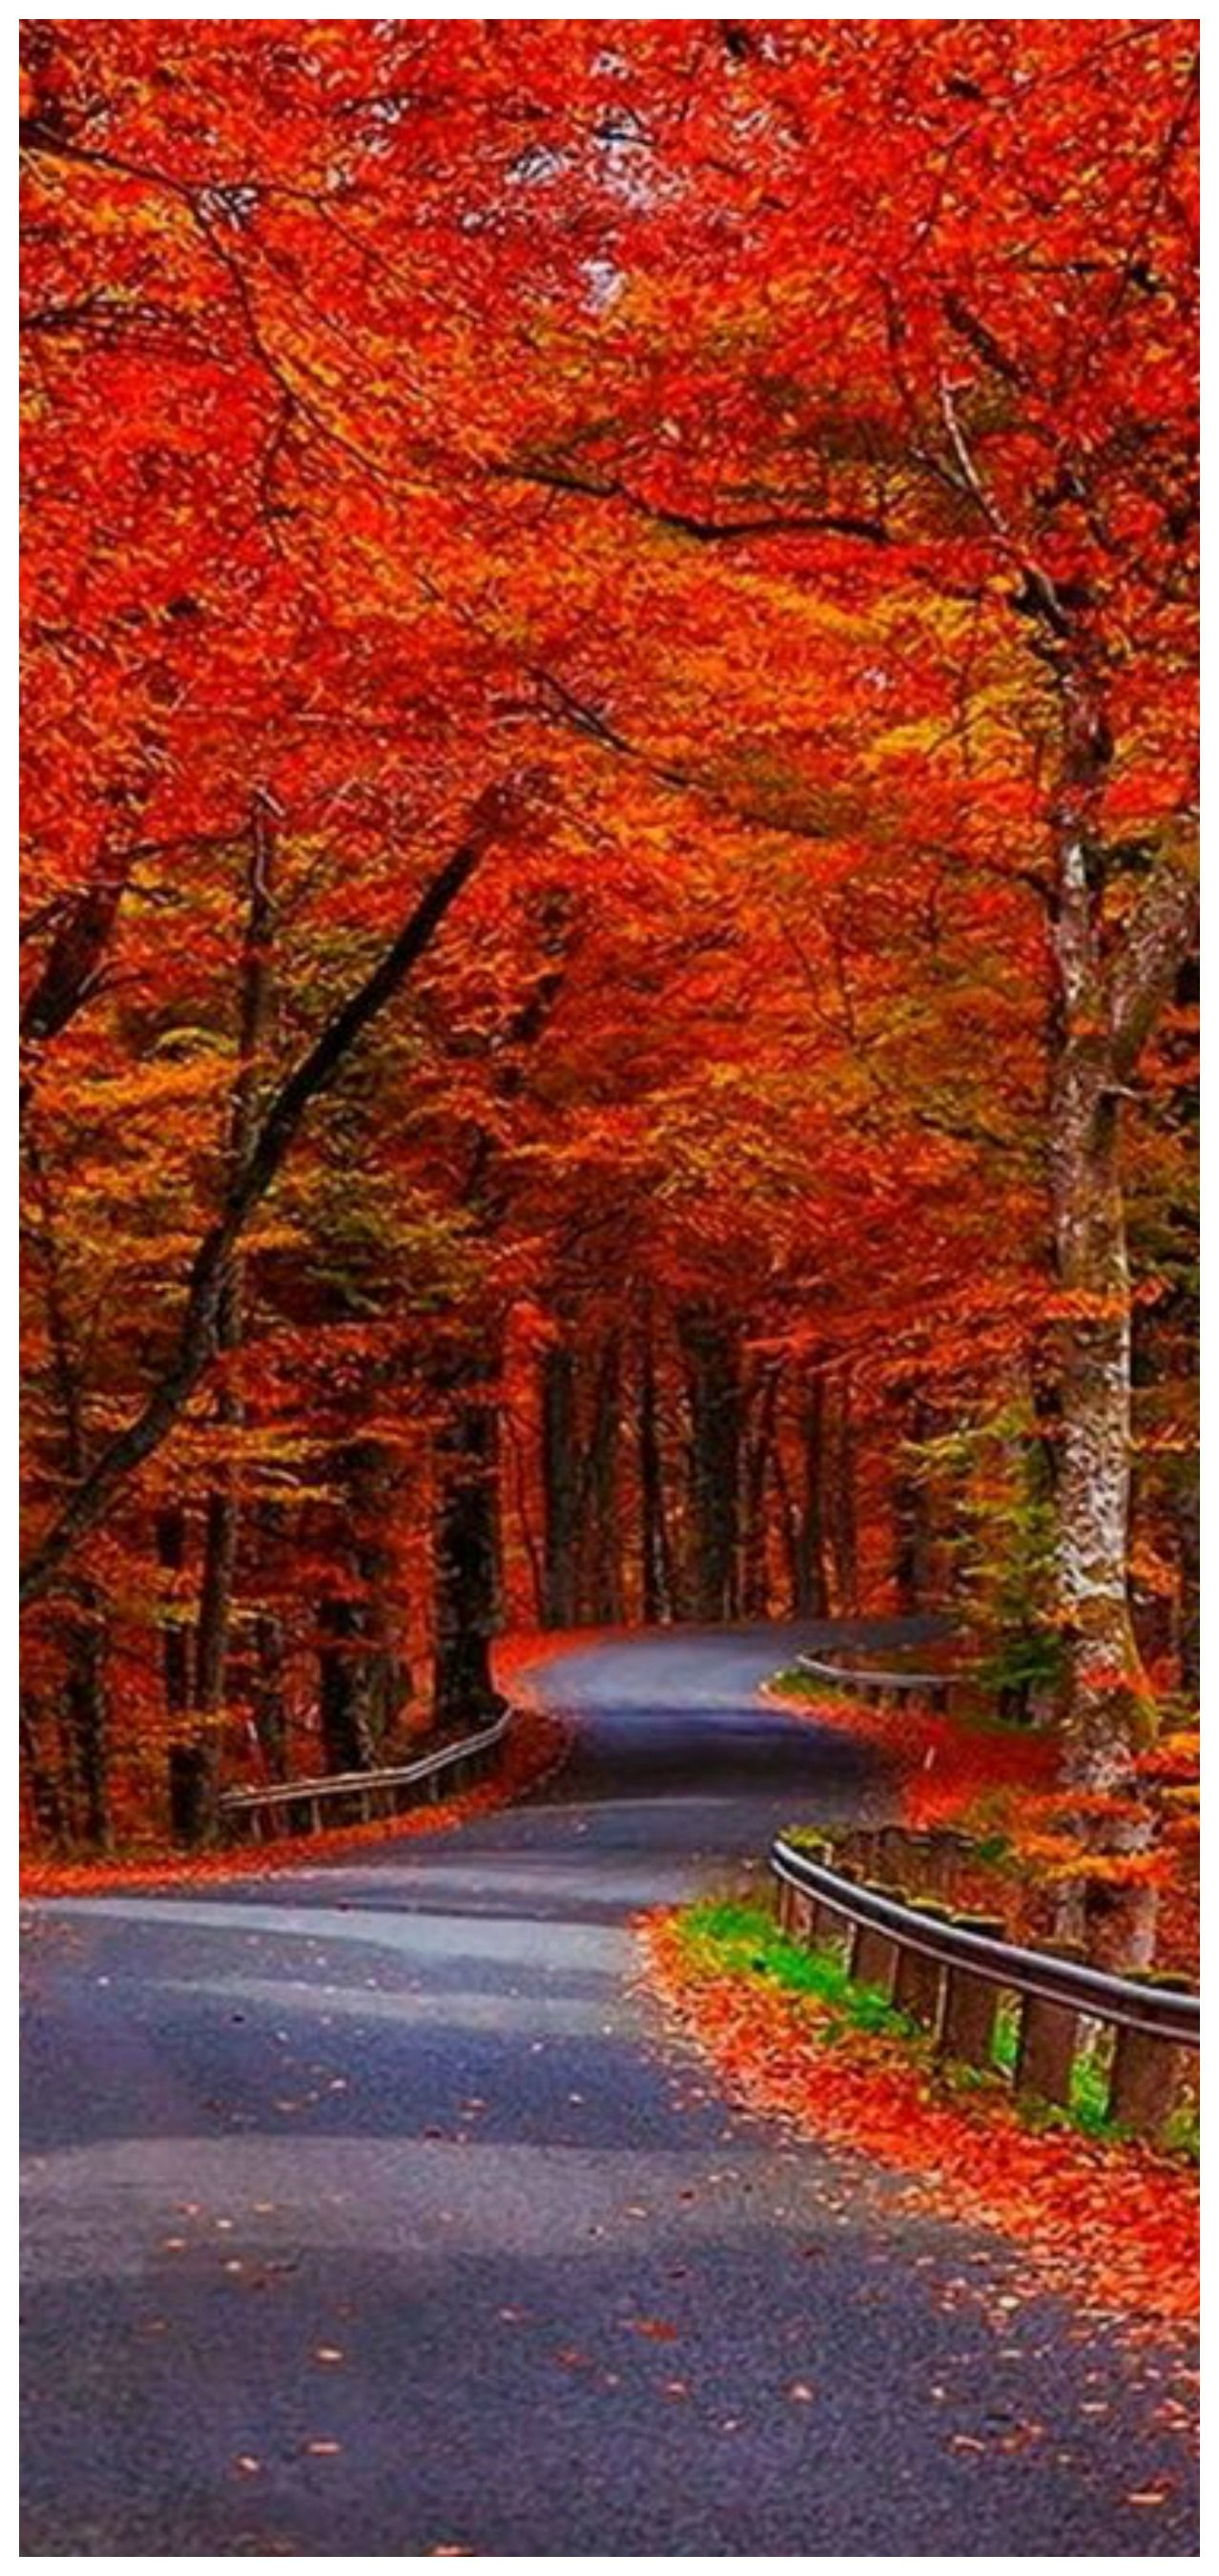 31 Beautiful Autumn Wallpapers Autumn Scenery Fall Pictures Scenery Wallpaper autumn road rays alley trees